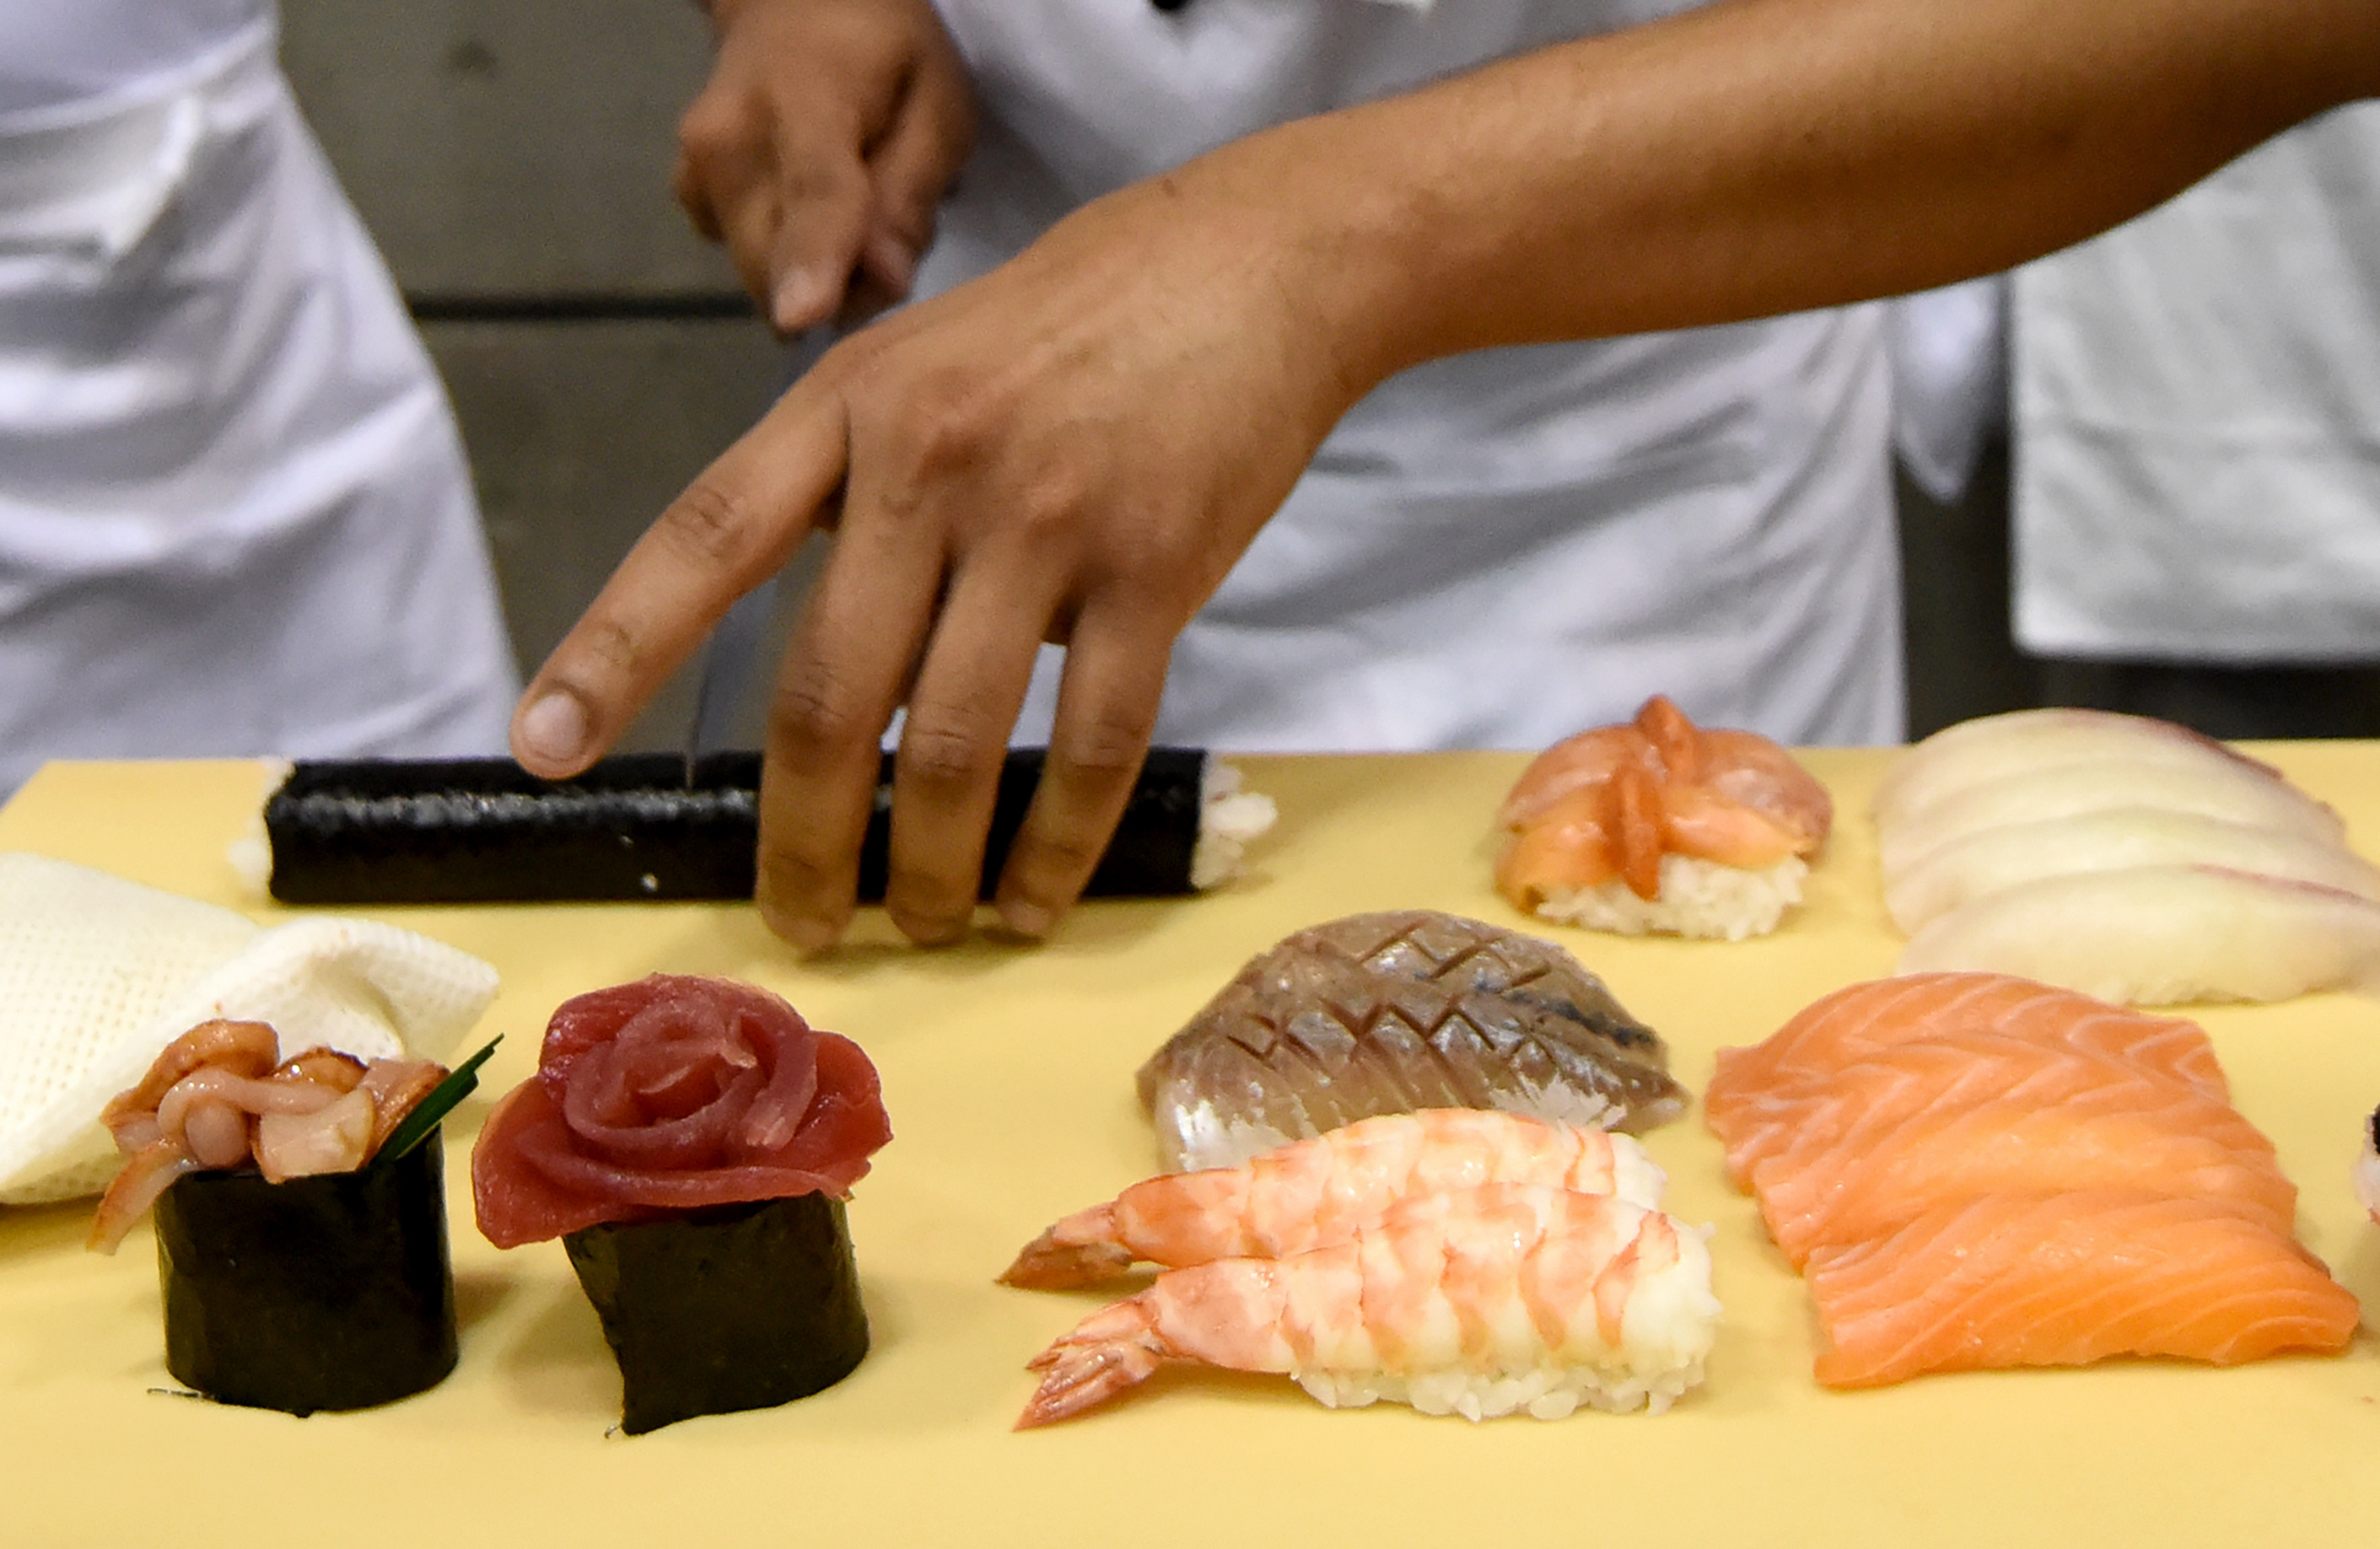 A young foreign sushi chef makes sushi at the World Sushi Cup Japan 2016 in Tokyo on August 18, 2016.  Twenty-seven sushi chefs from fourteen countries and two regions took part in the two-day competition in hygienic and technical skill of sushi making organized by Japan's Agriculture, Forestry and Fisheries Ministry. / AFP PHOTO / TORU YAMANAKA